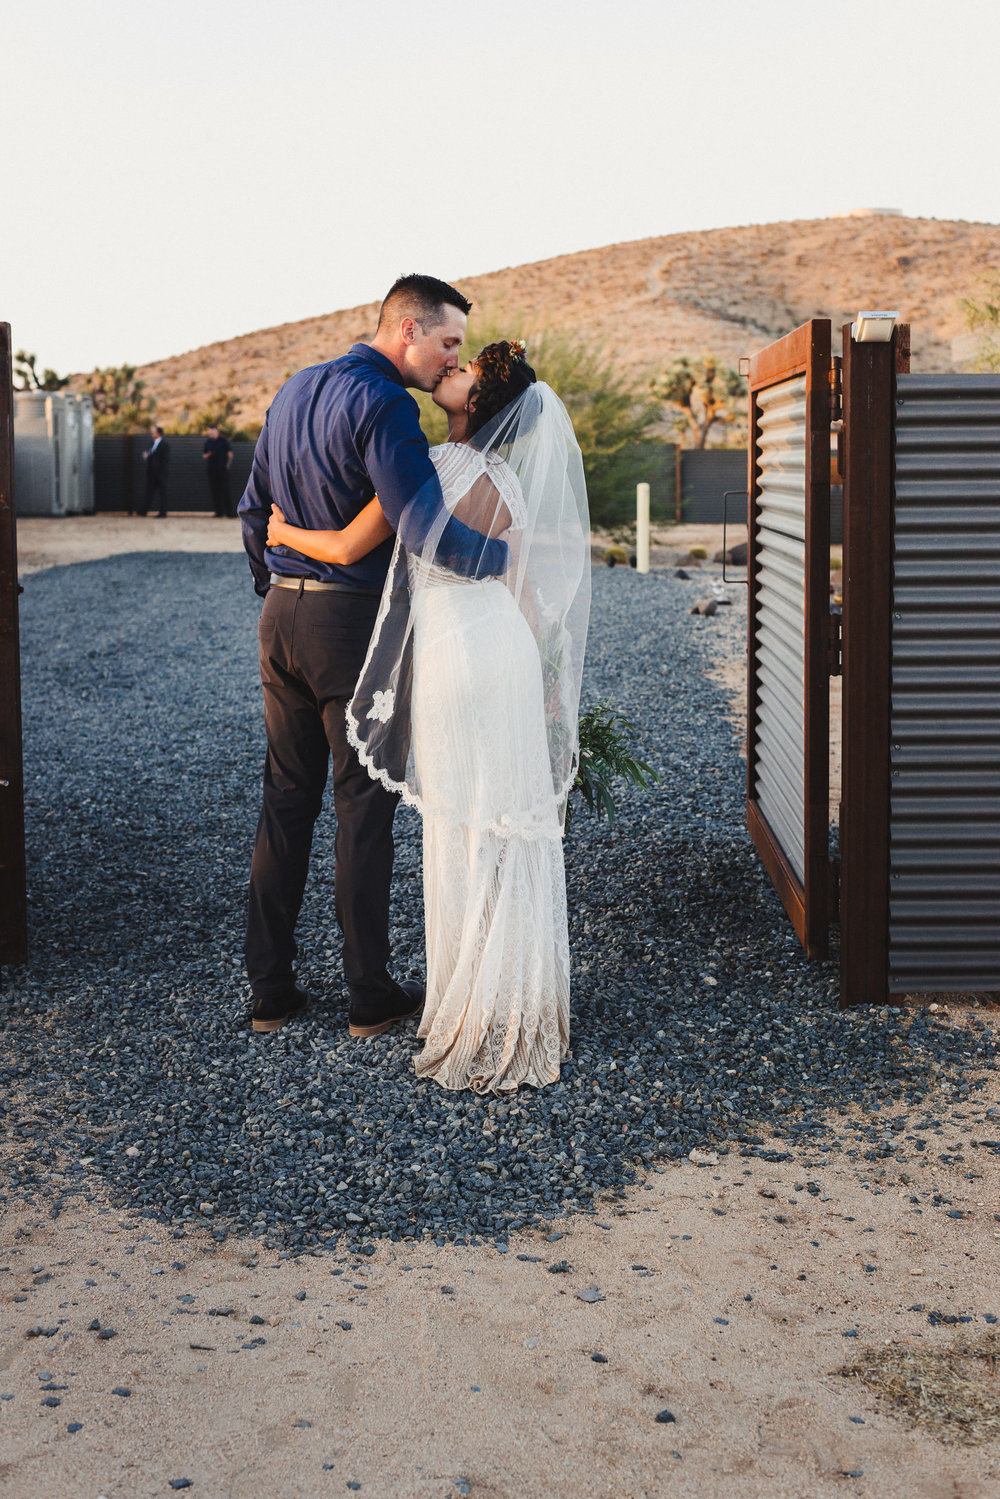 sJ + N - Joshua Tree, CA - 08 Bride + Groom-66.jpg